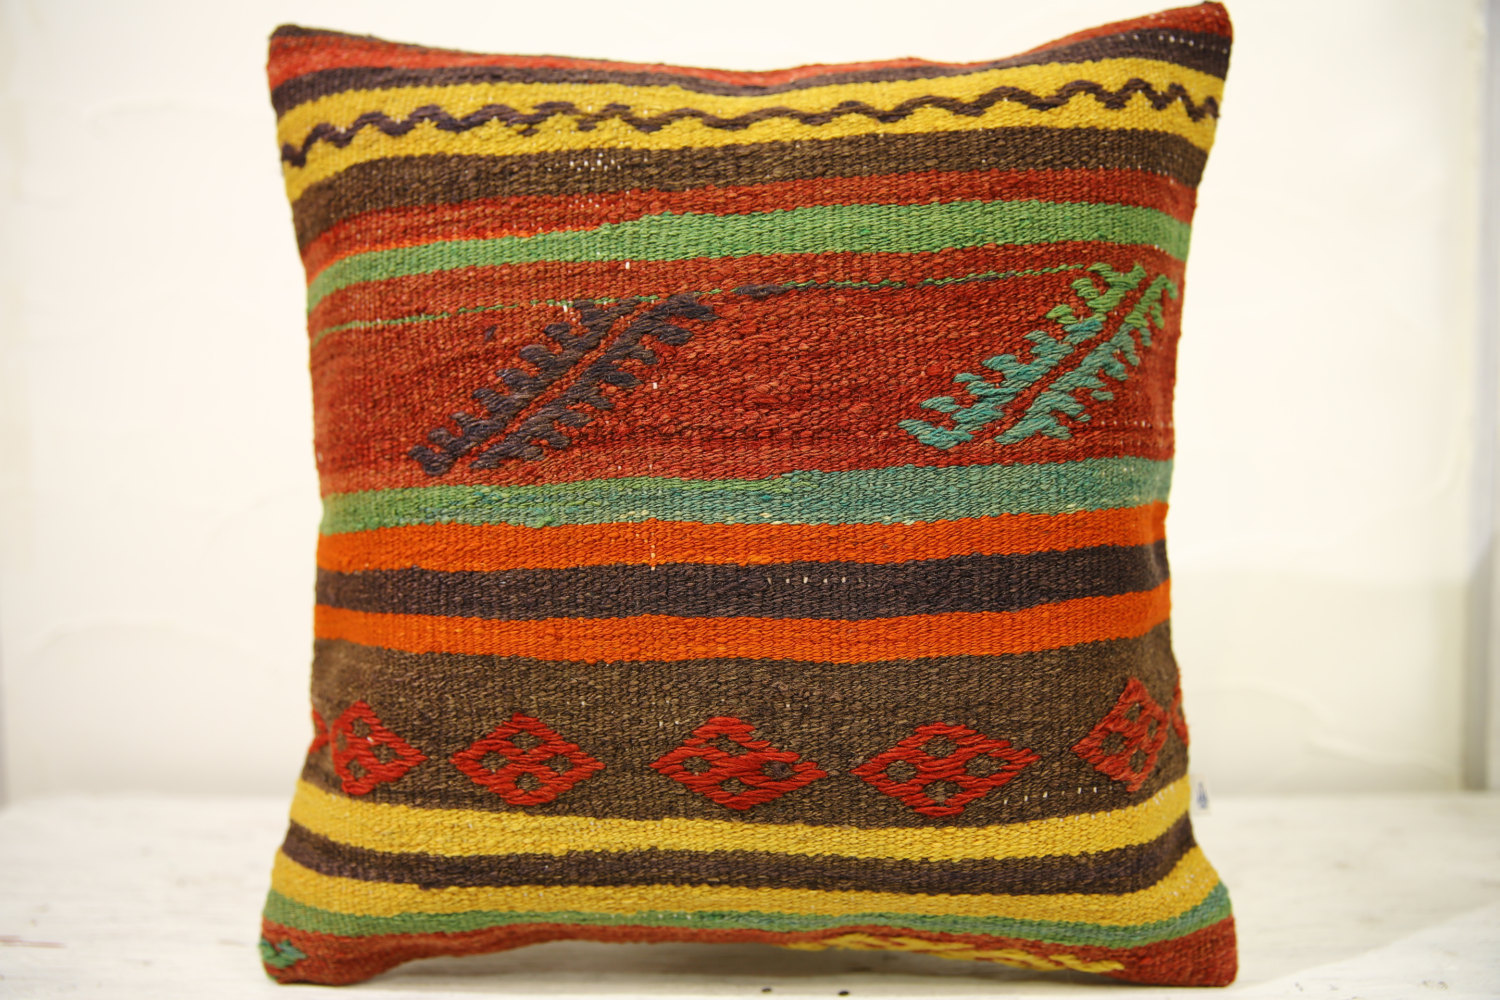 Kilim Pillows |16x16 | Decorative Pillows | 551 | Accent Pillows , turkish pillo